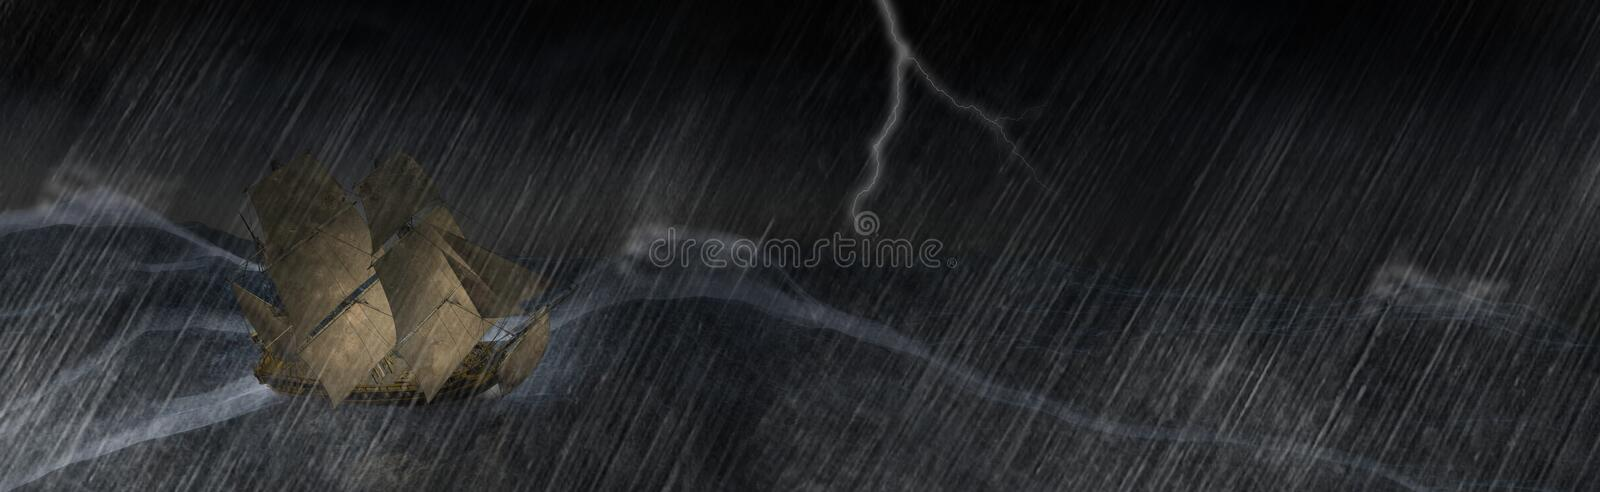 Tall Sailing Ship Storm Sea Illustration. Illustration of a tall sailing ship caught in a storm. The stormy ocean or squall is bad weather and danger for the stock illustration